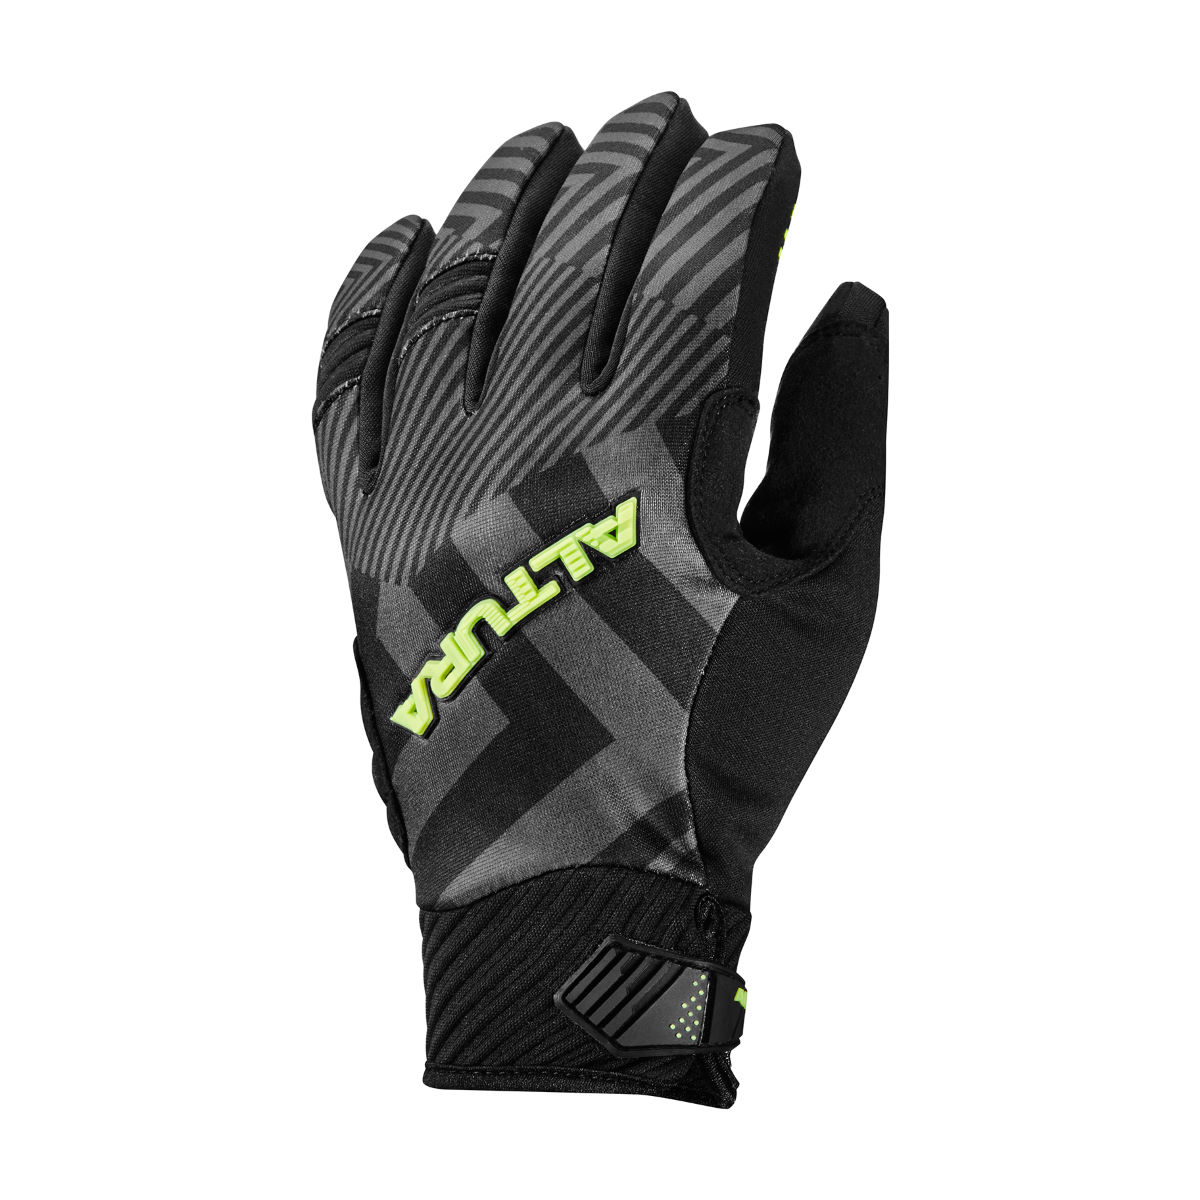 Altura Five\40 Windproof Gloves - Extra Large Black | Winter Gloves